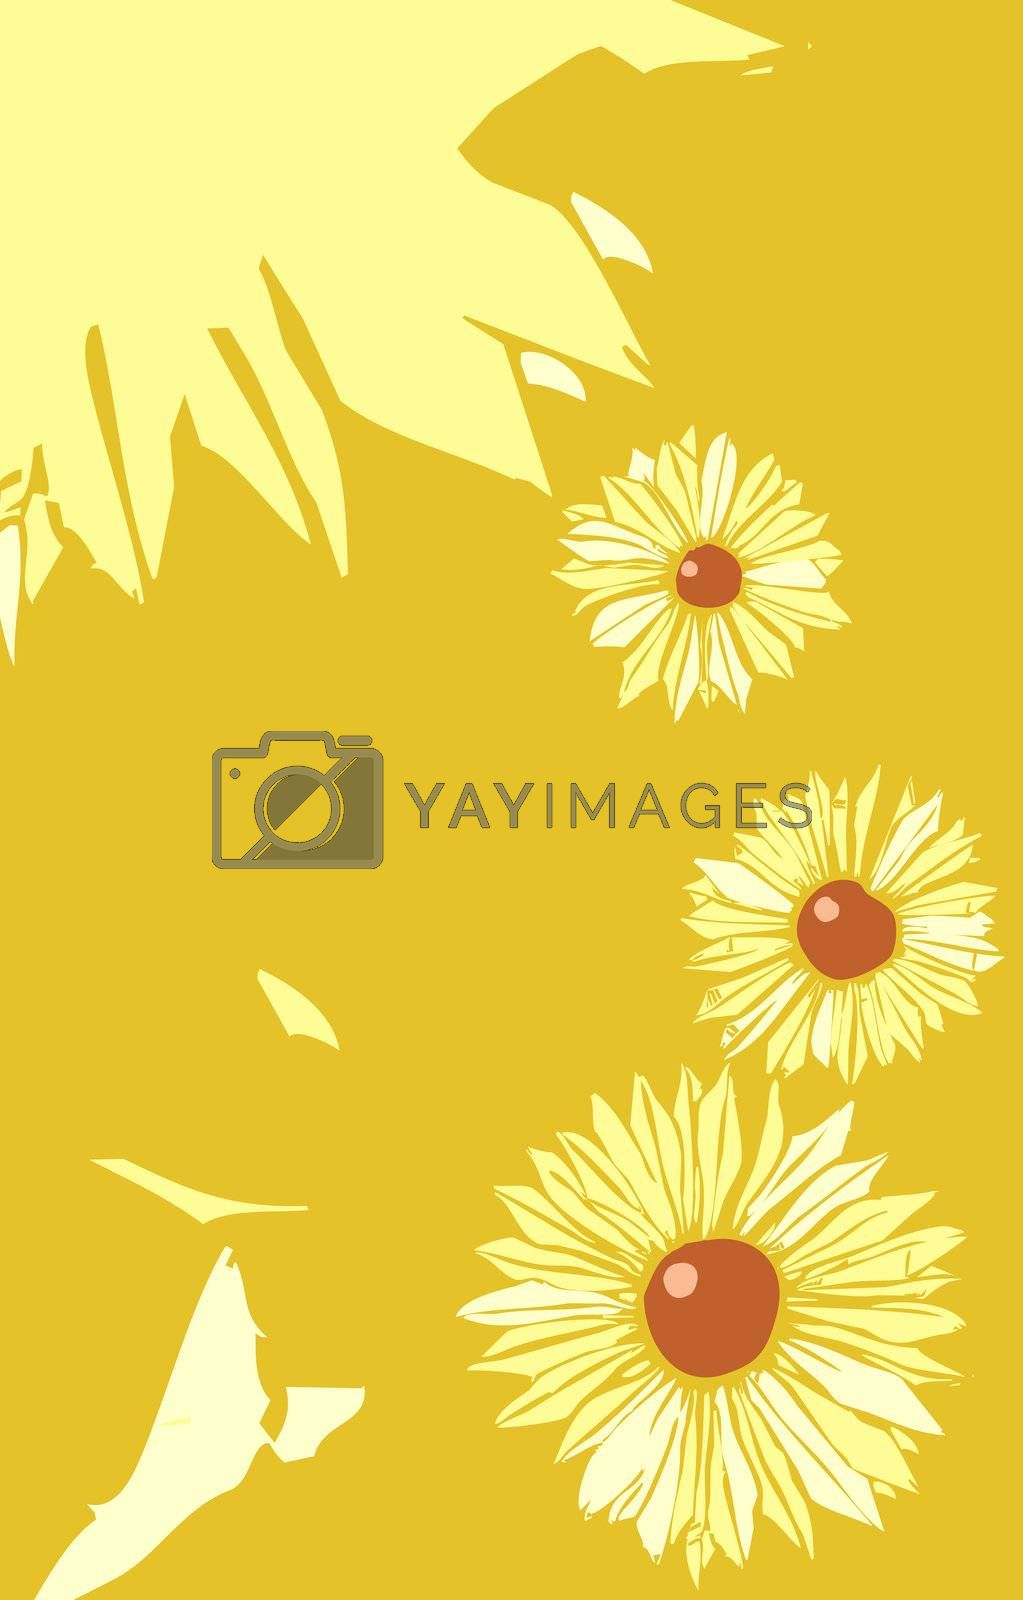 Black Eyed Susan flowers in a tabloid layout.